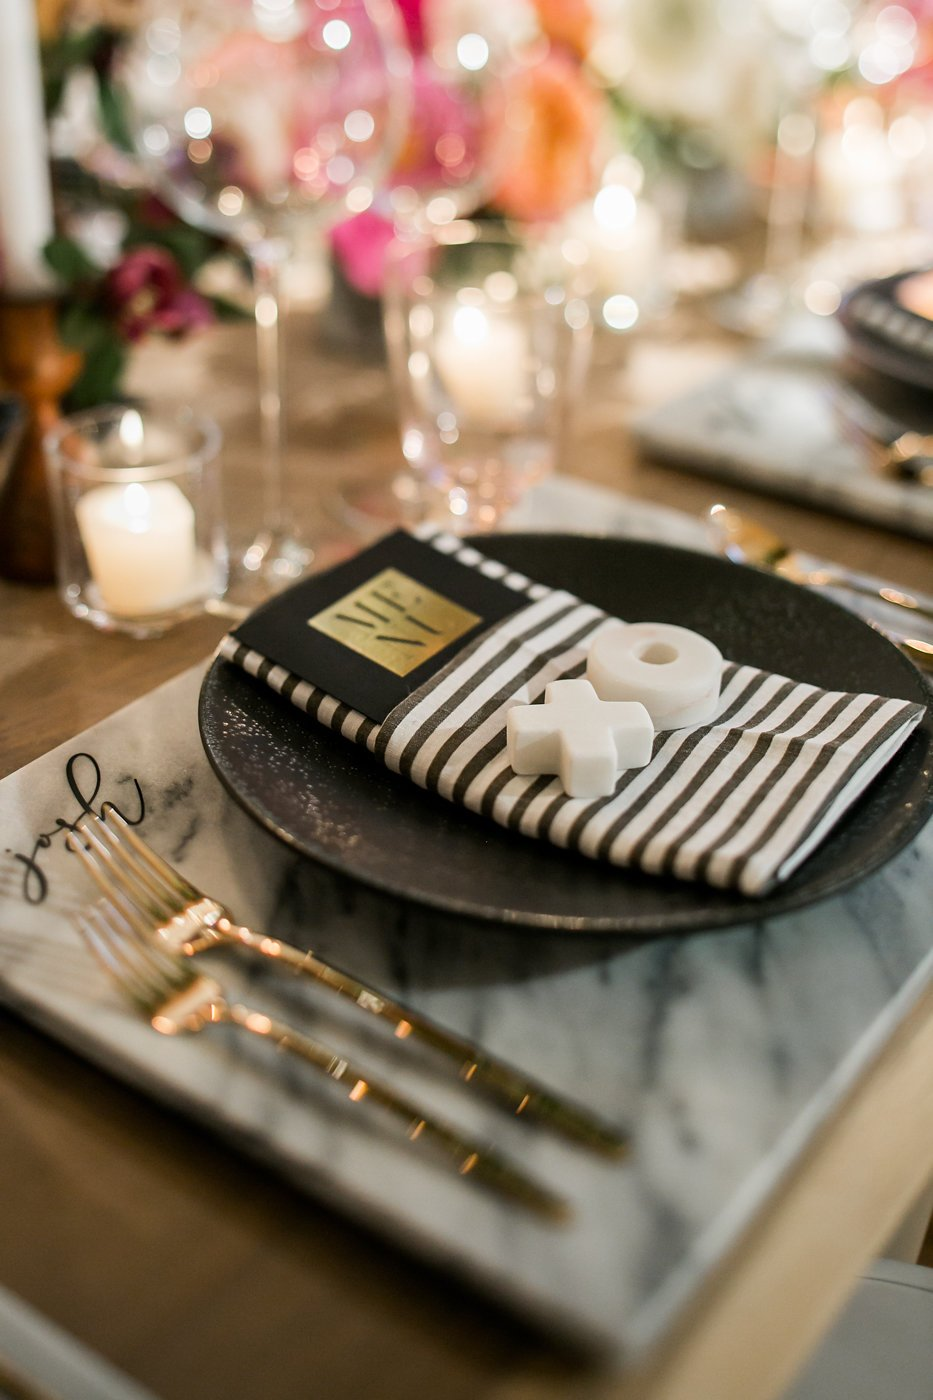 Table setting with black dinner plate and striped napkin